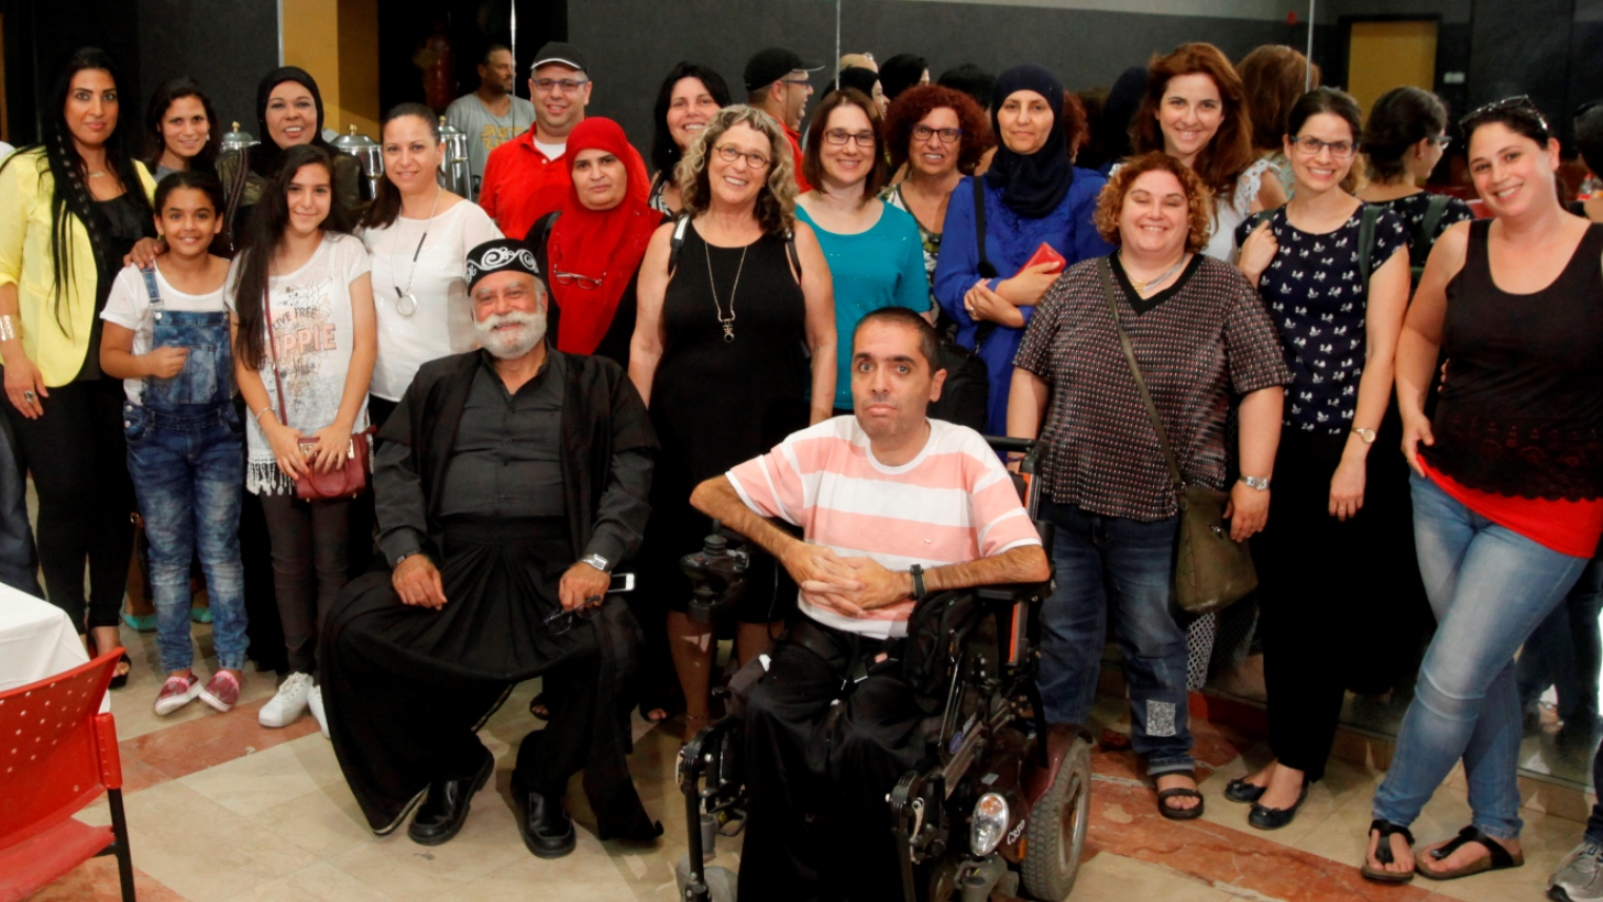 Beit Issie Shapiro parent leaders from Ra'anana and Kalansua at the Sindian Center. Nawaf Zmiro, head of the Sindian Center's Family Advancement Center, is in front in the wheelchair. Photo: courtesy